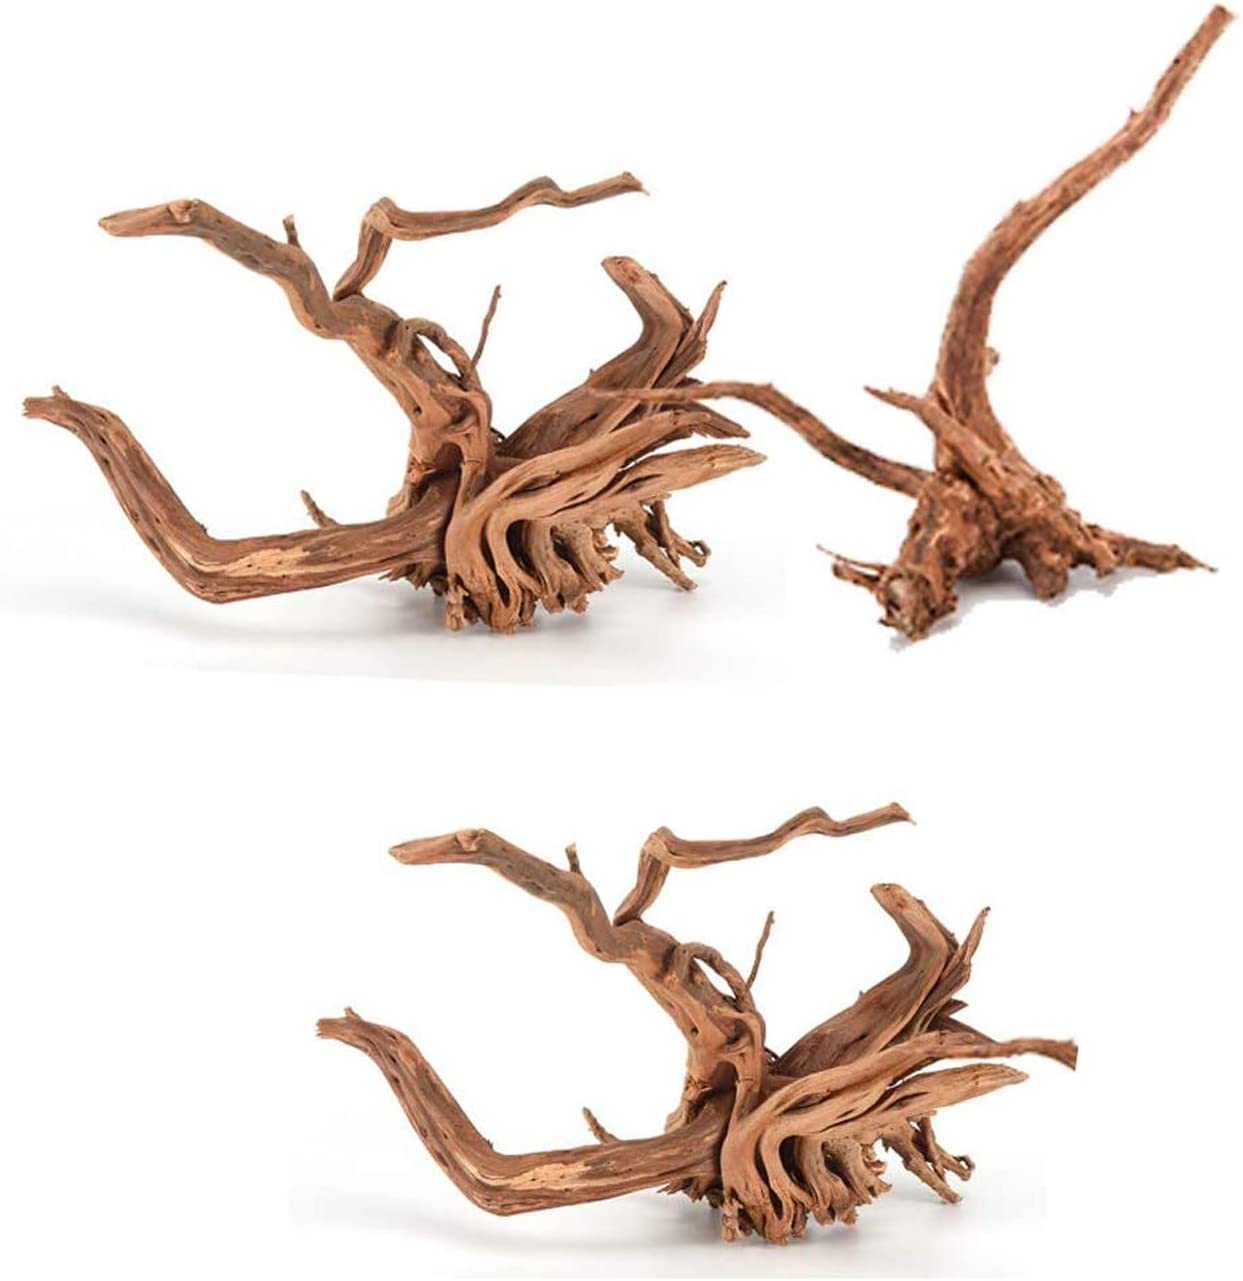 Tfwadmx Aquarium Driftwood, Spider Wood Sinkable Driftwood for Fish Tank Decorations Natural Branches for Reptile